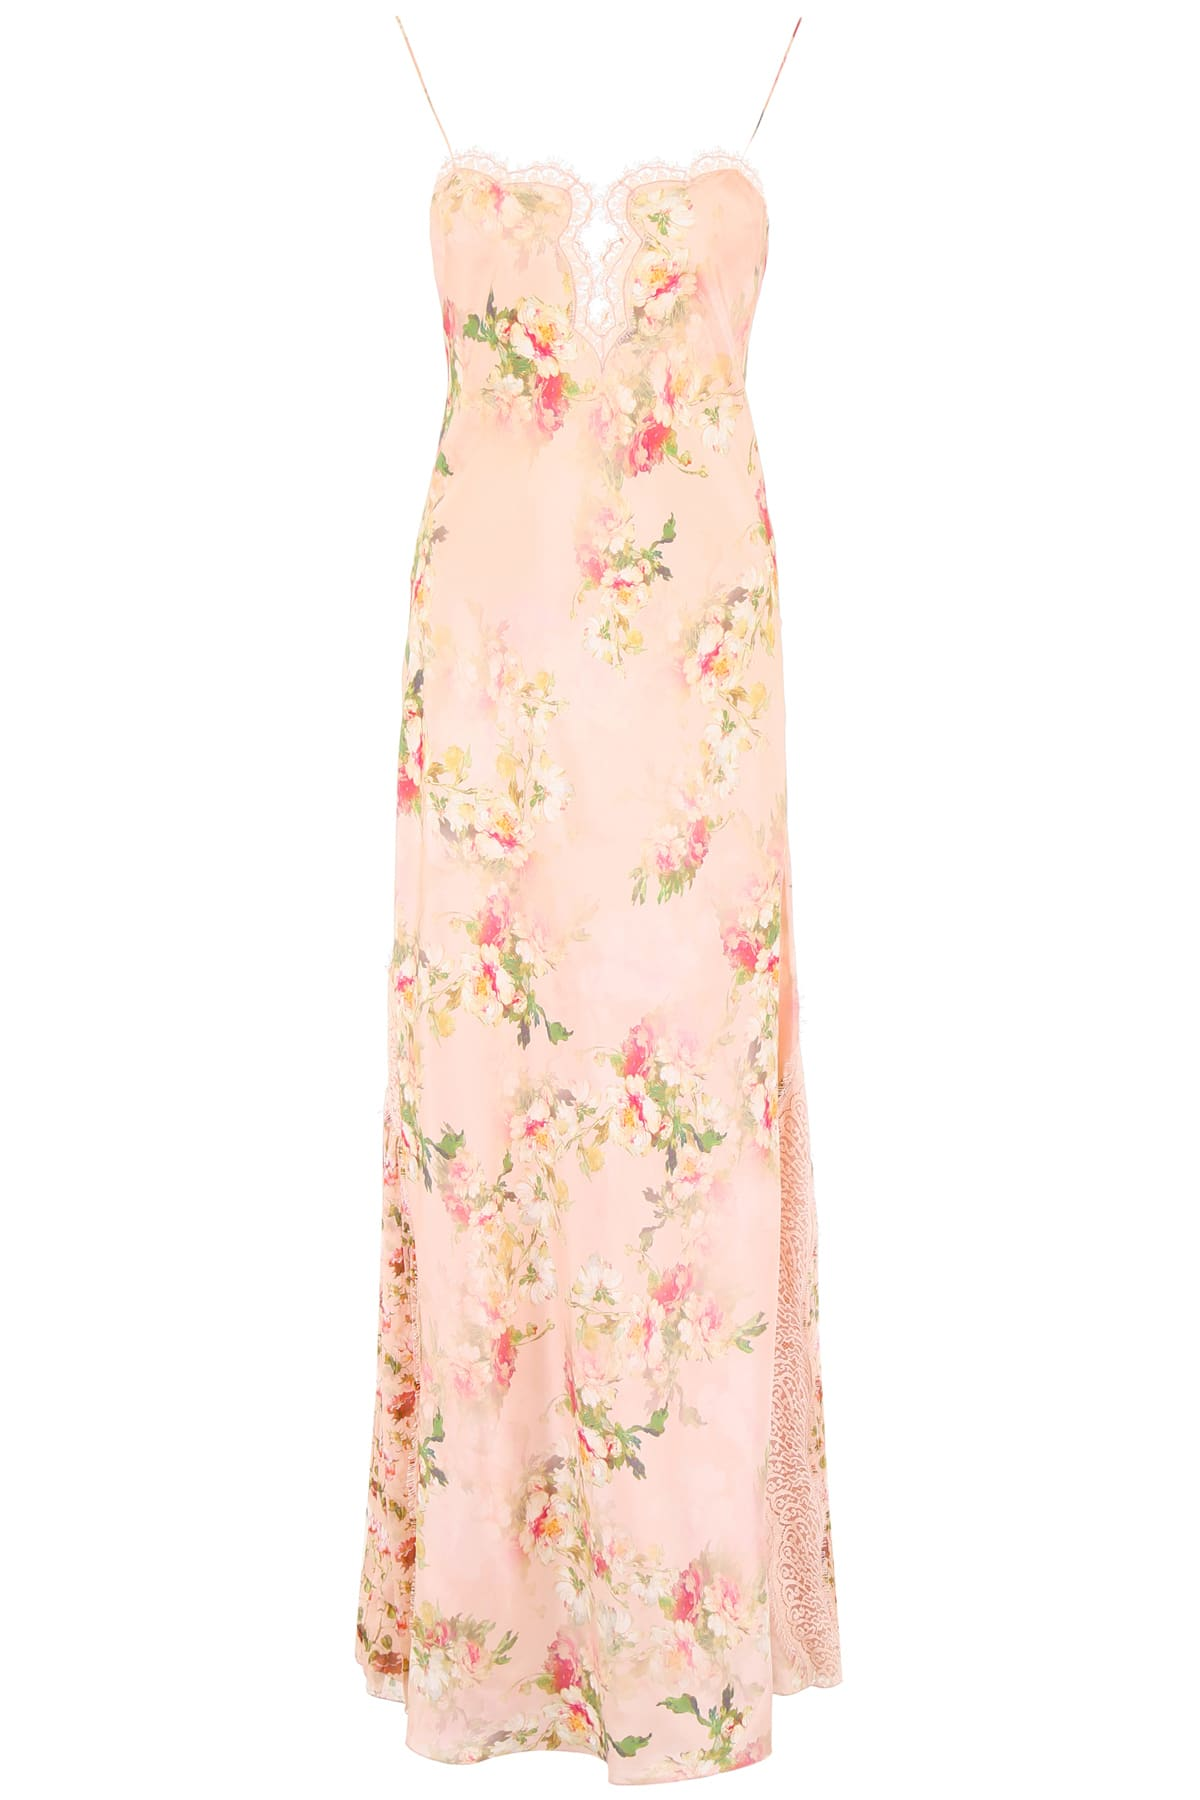 Alberta Ferretti Floral-printed Slip Dress